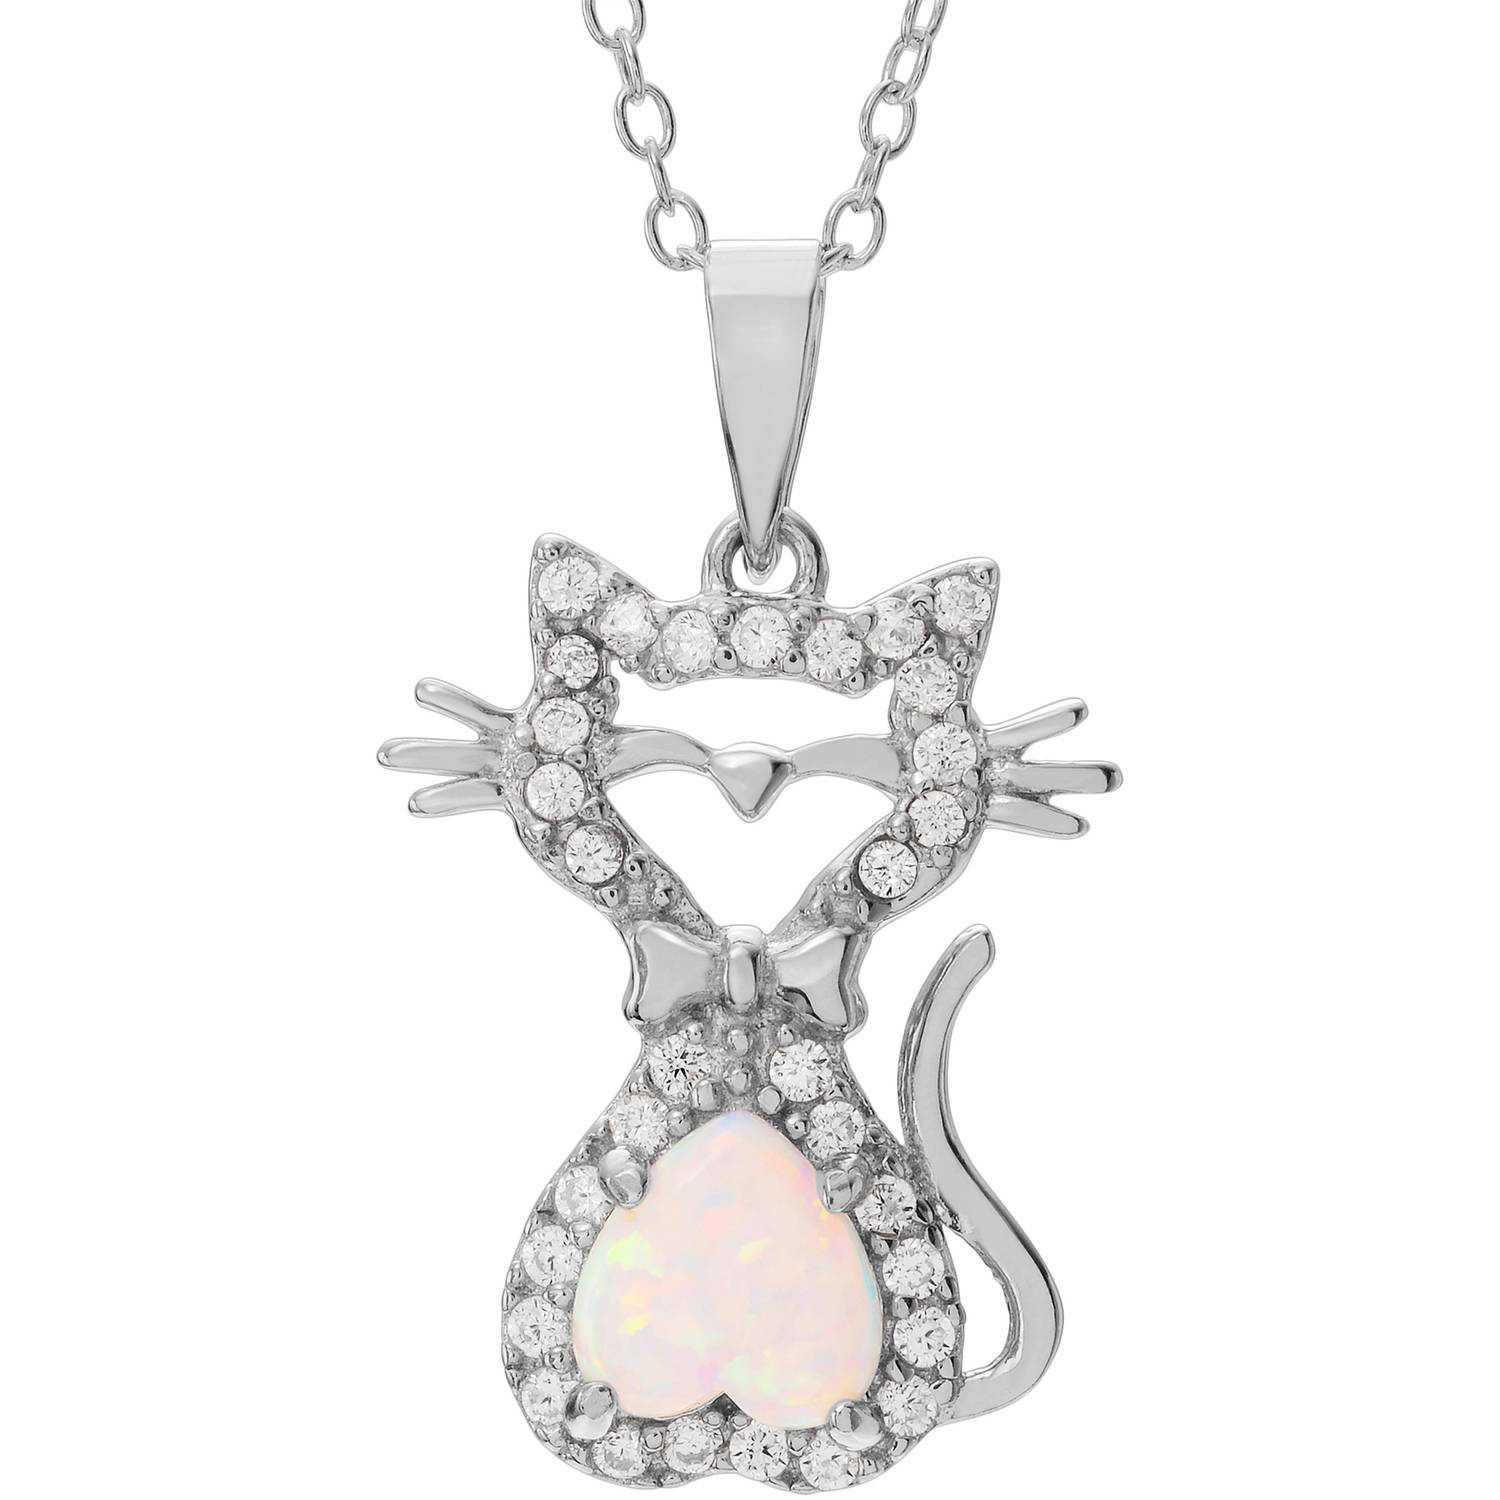 Brinley Co. Women's Opal and Cubic Zirconia Accent Sterling Silver Cat Pendant Fashion Necklace by KNS International